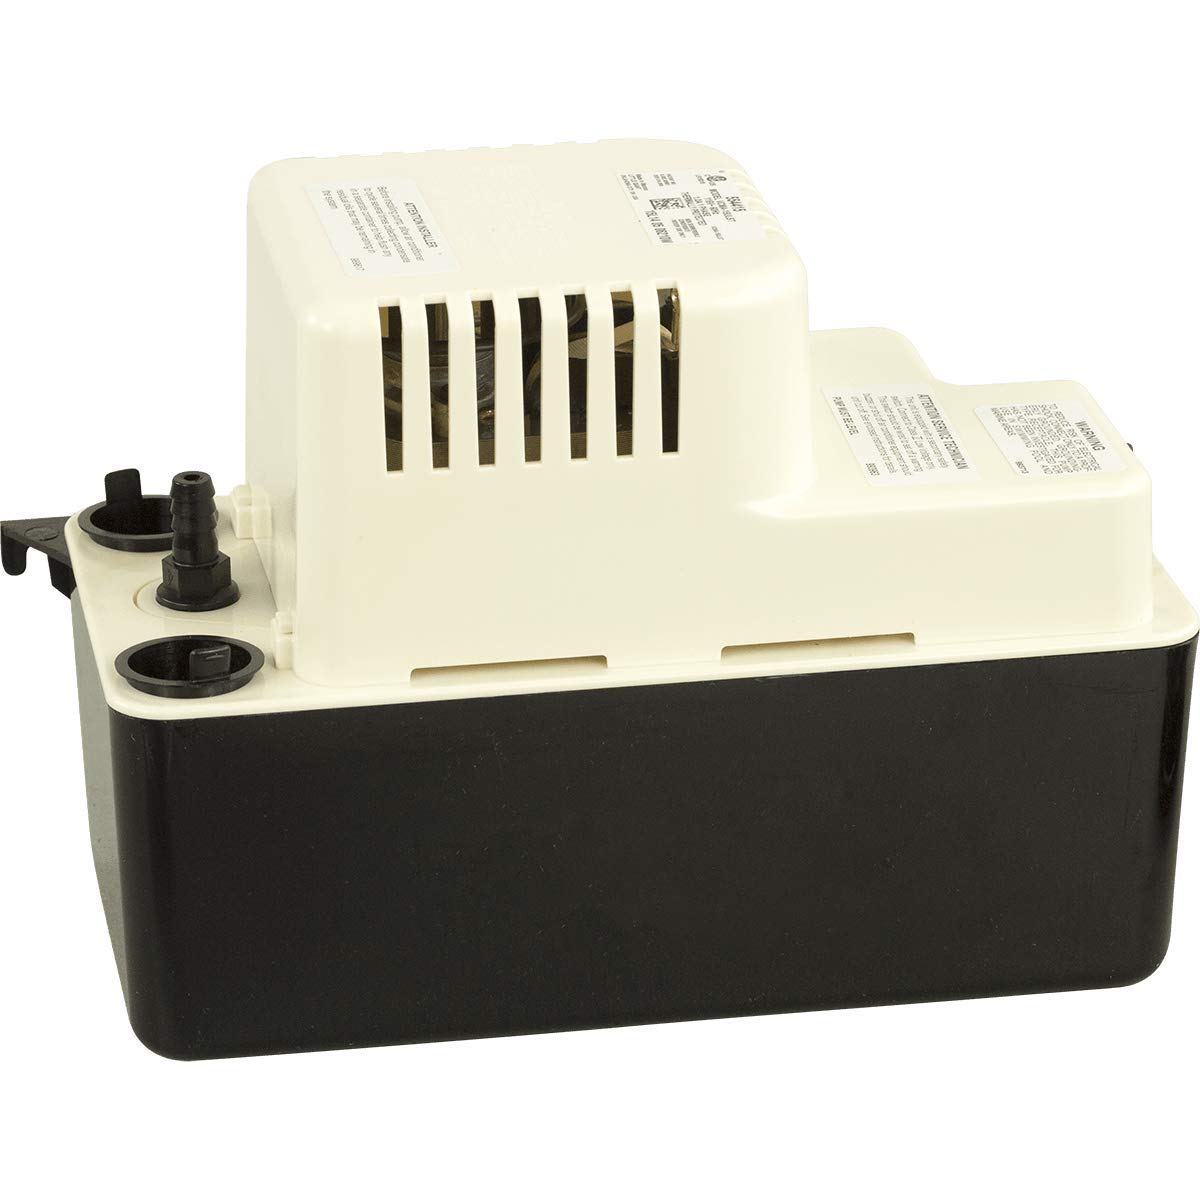 Little Giant 554415 VCMA-15ULST 1/50 horsepower 115 volts VCMA Series Automatic Condensate Removal Pump by LITTLE GIANT (Image #1)